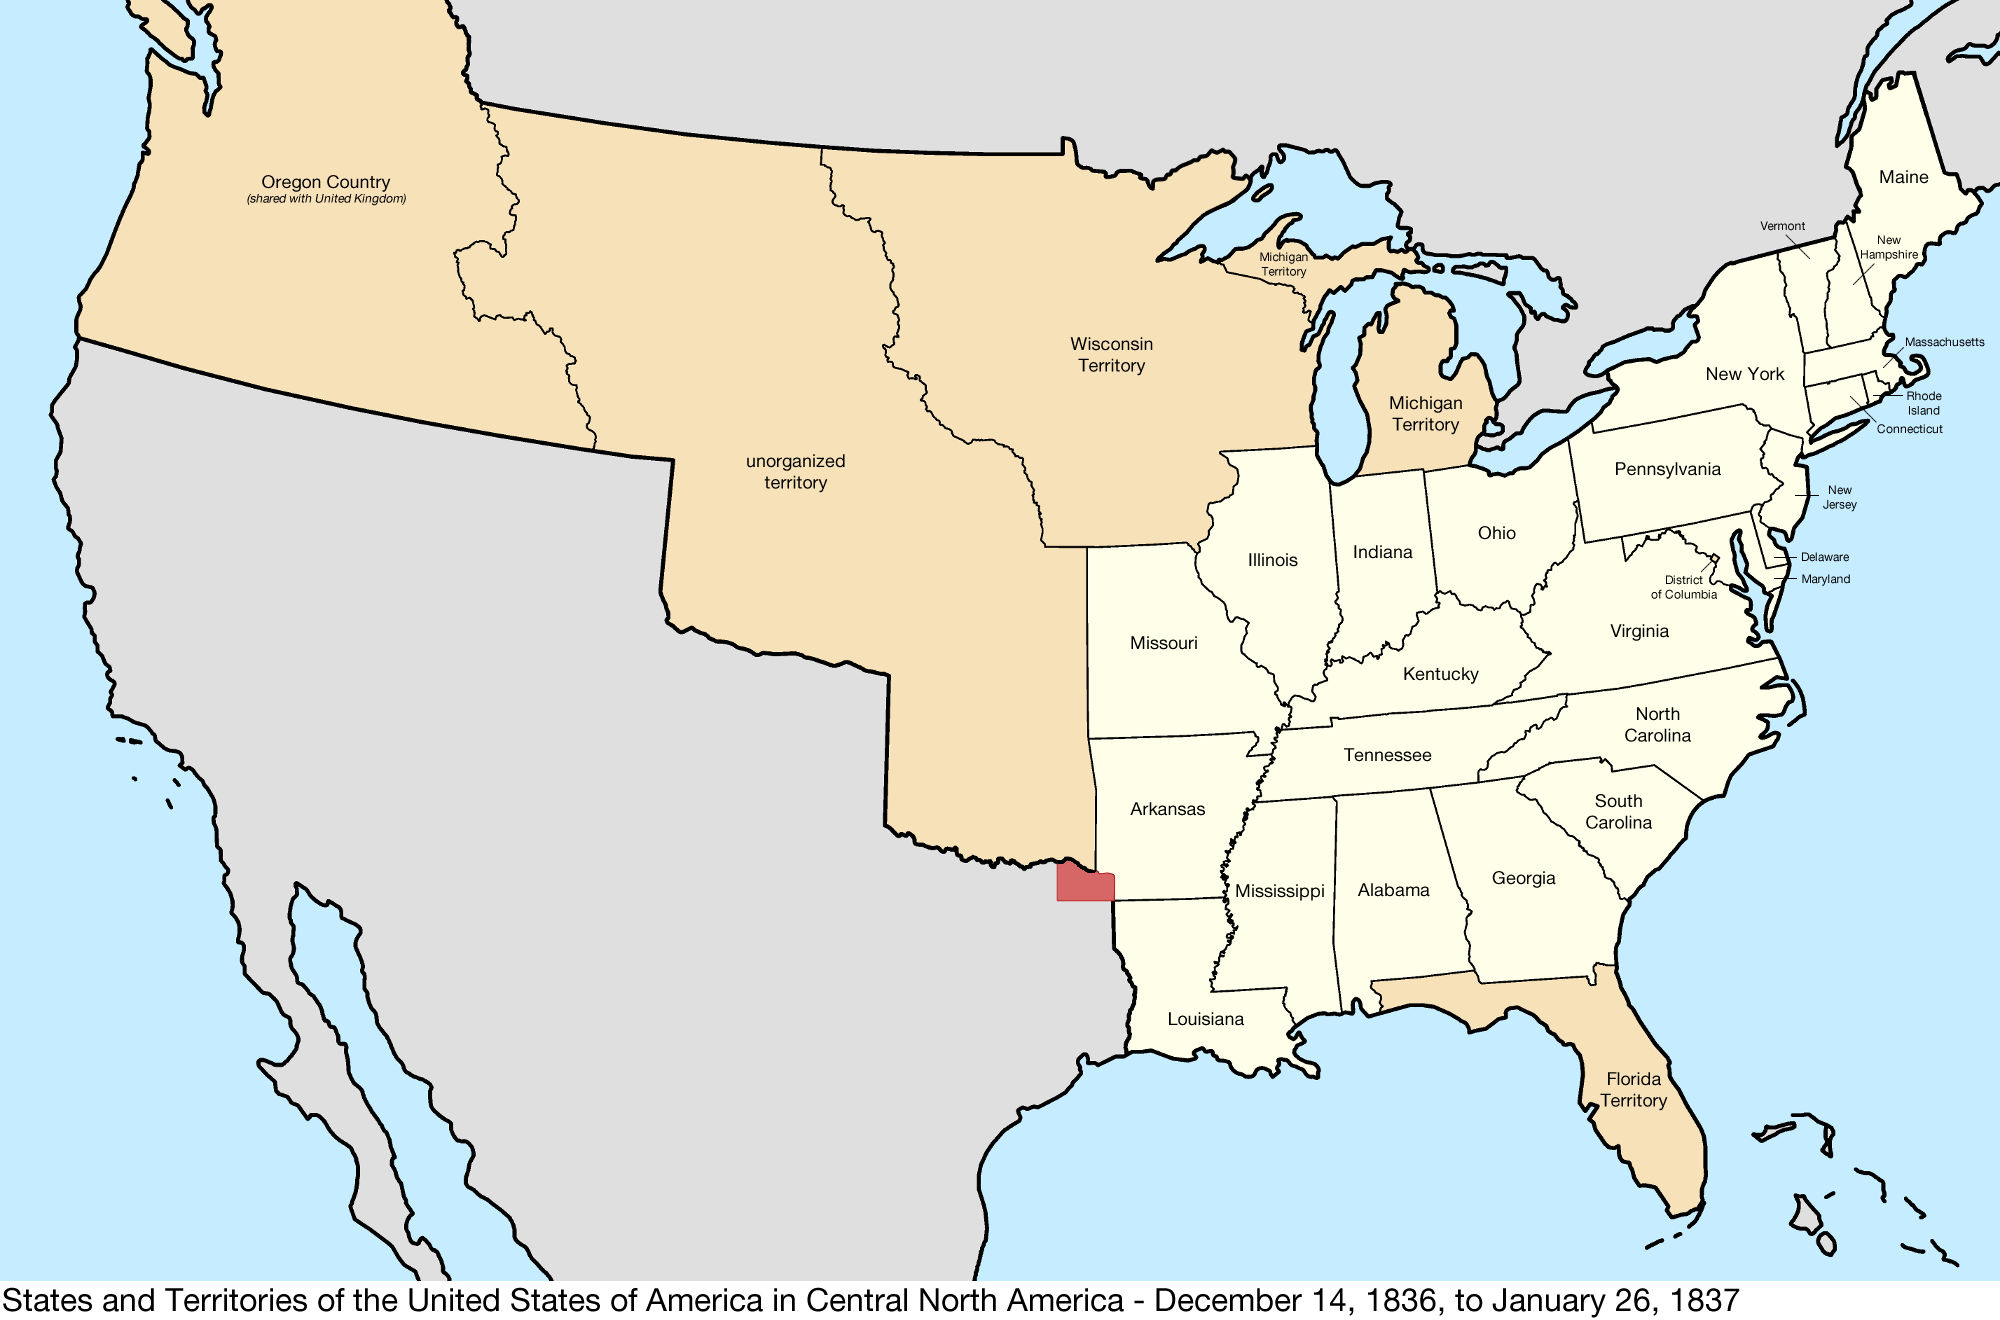 file united states central map 1836 12 14 to 1837 01